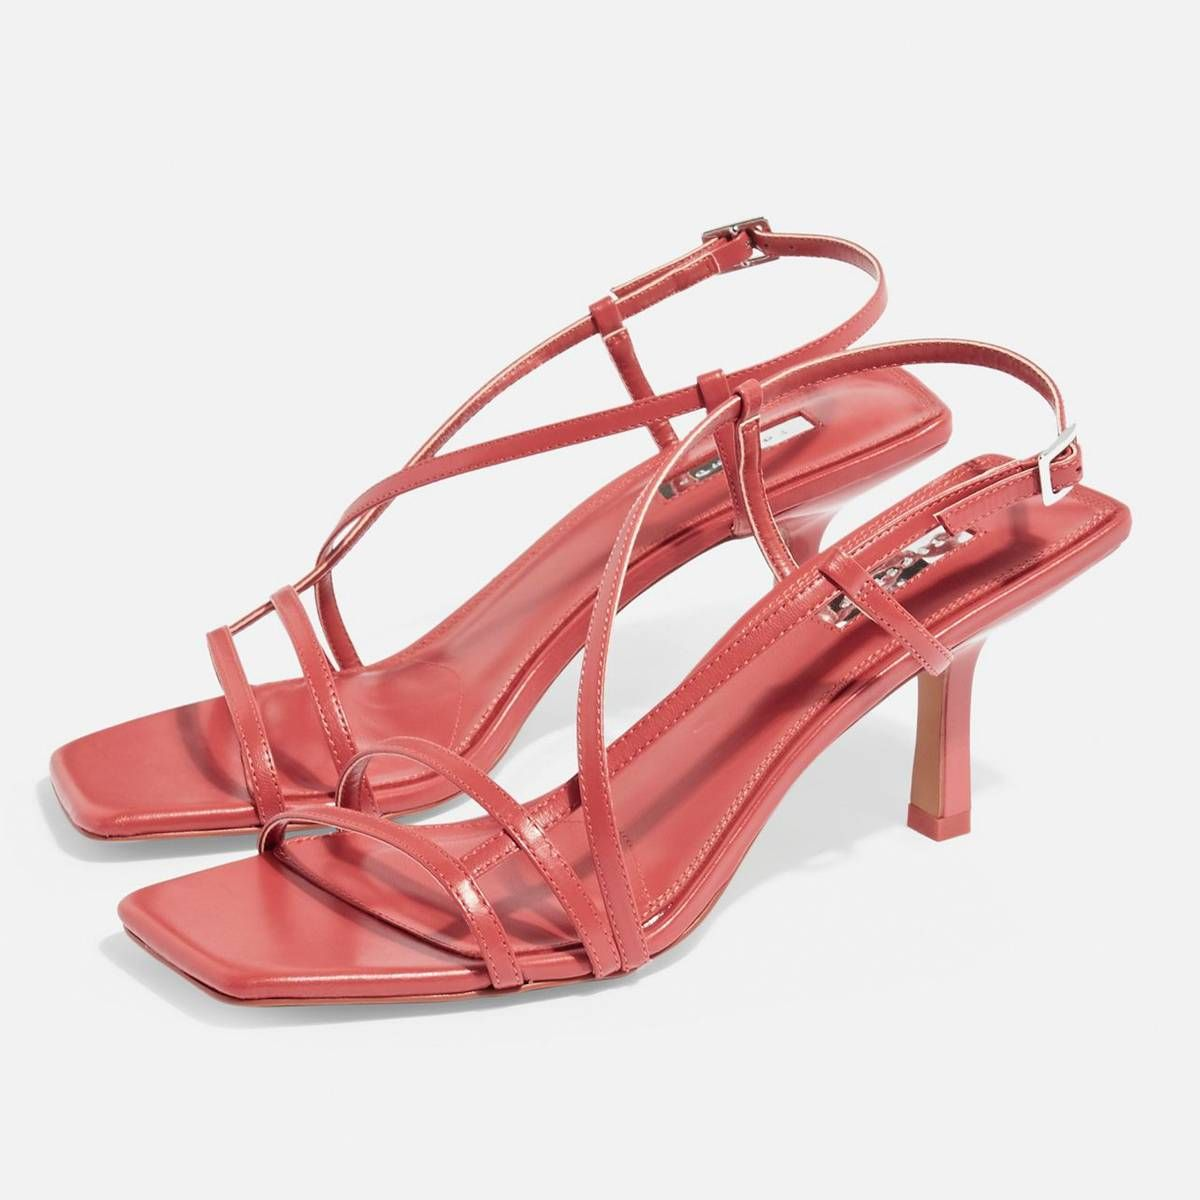 7 Easy Wedding Guest Outfit Ideas That Will Work Every Time Trending Sandals Trending Shoes Sandals Heels